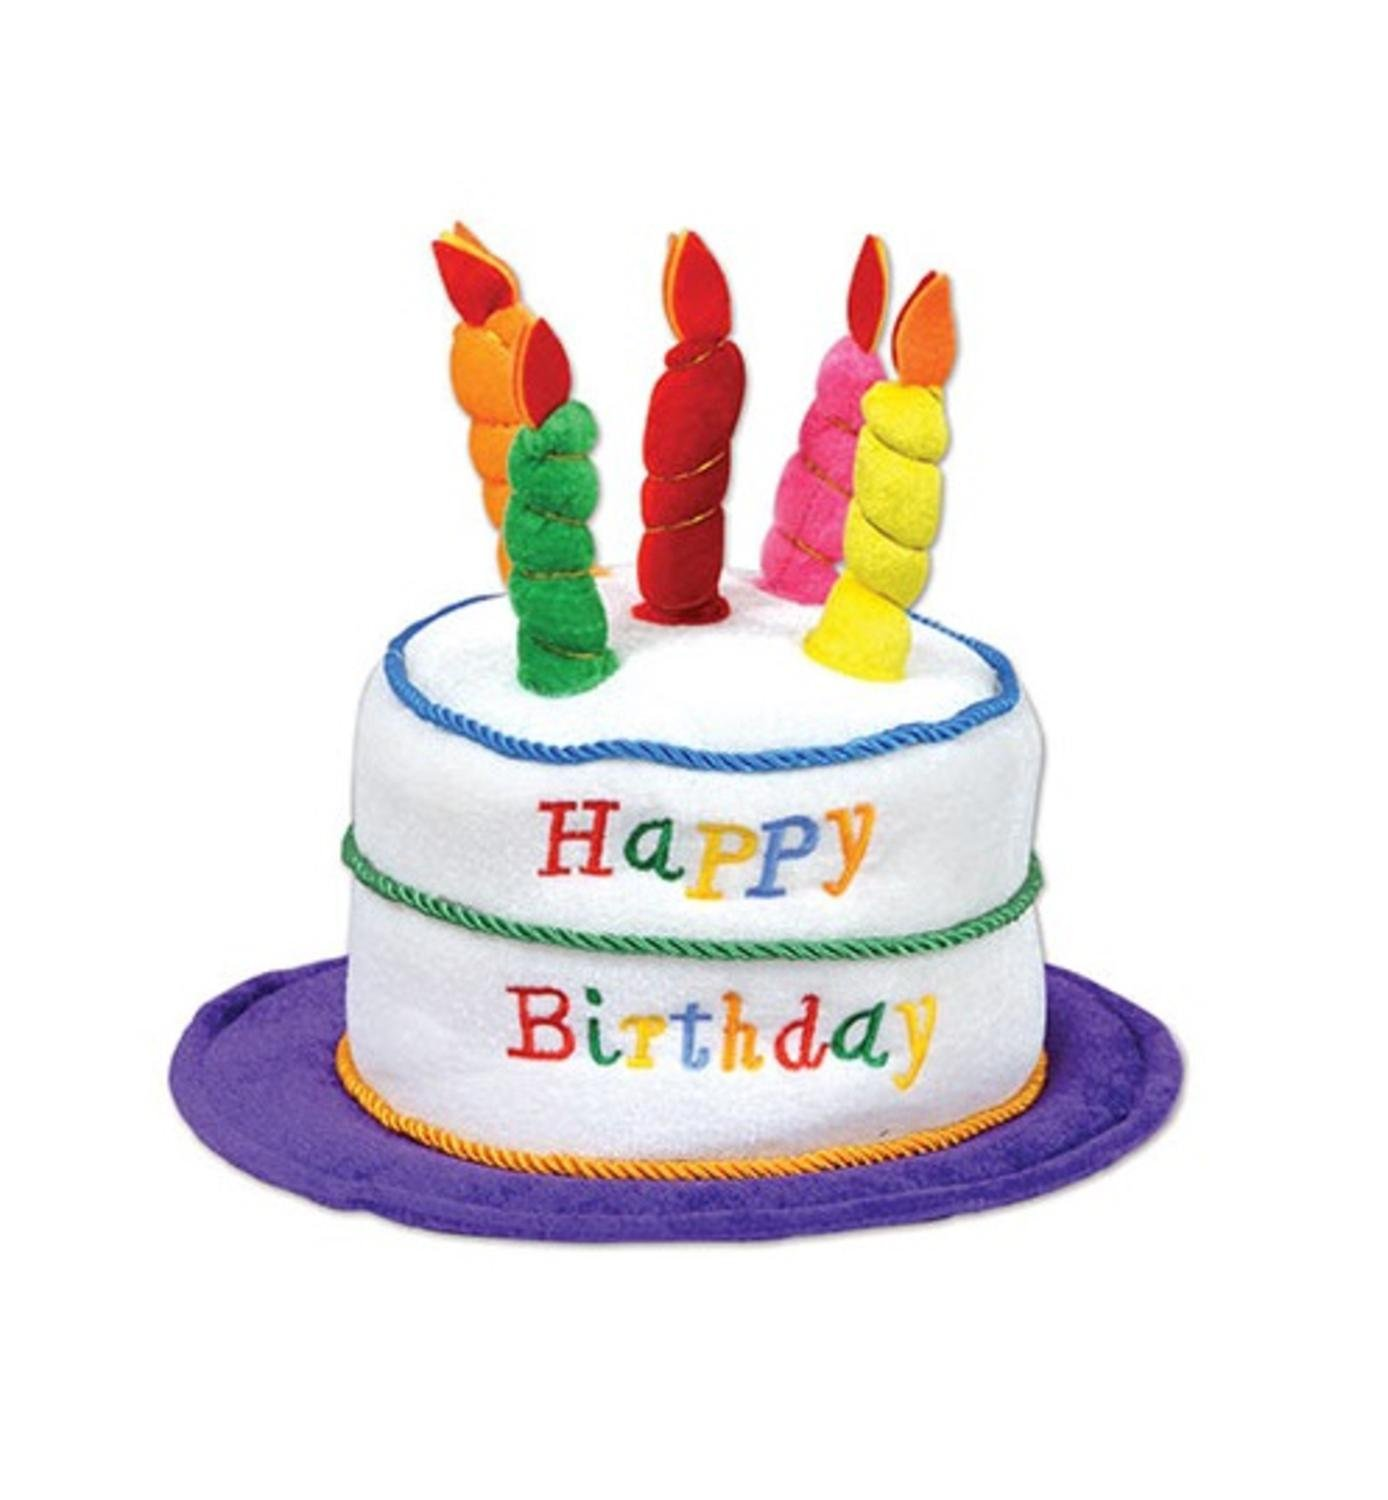 Pack of 12 Plush Multicolored Candle-Lit Birthday Cake Party Costume Hats